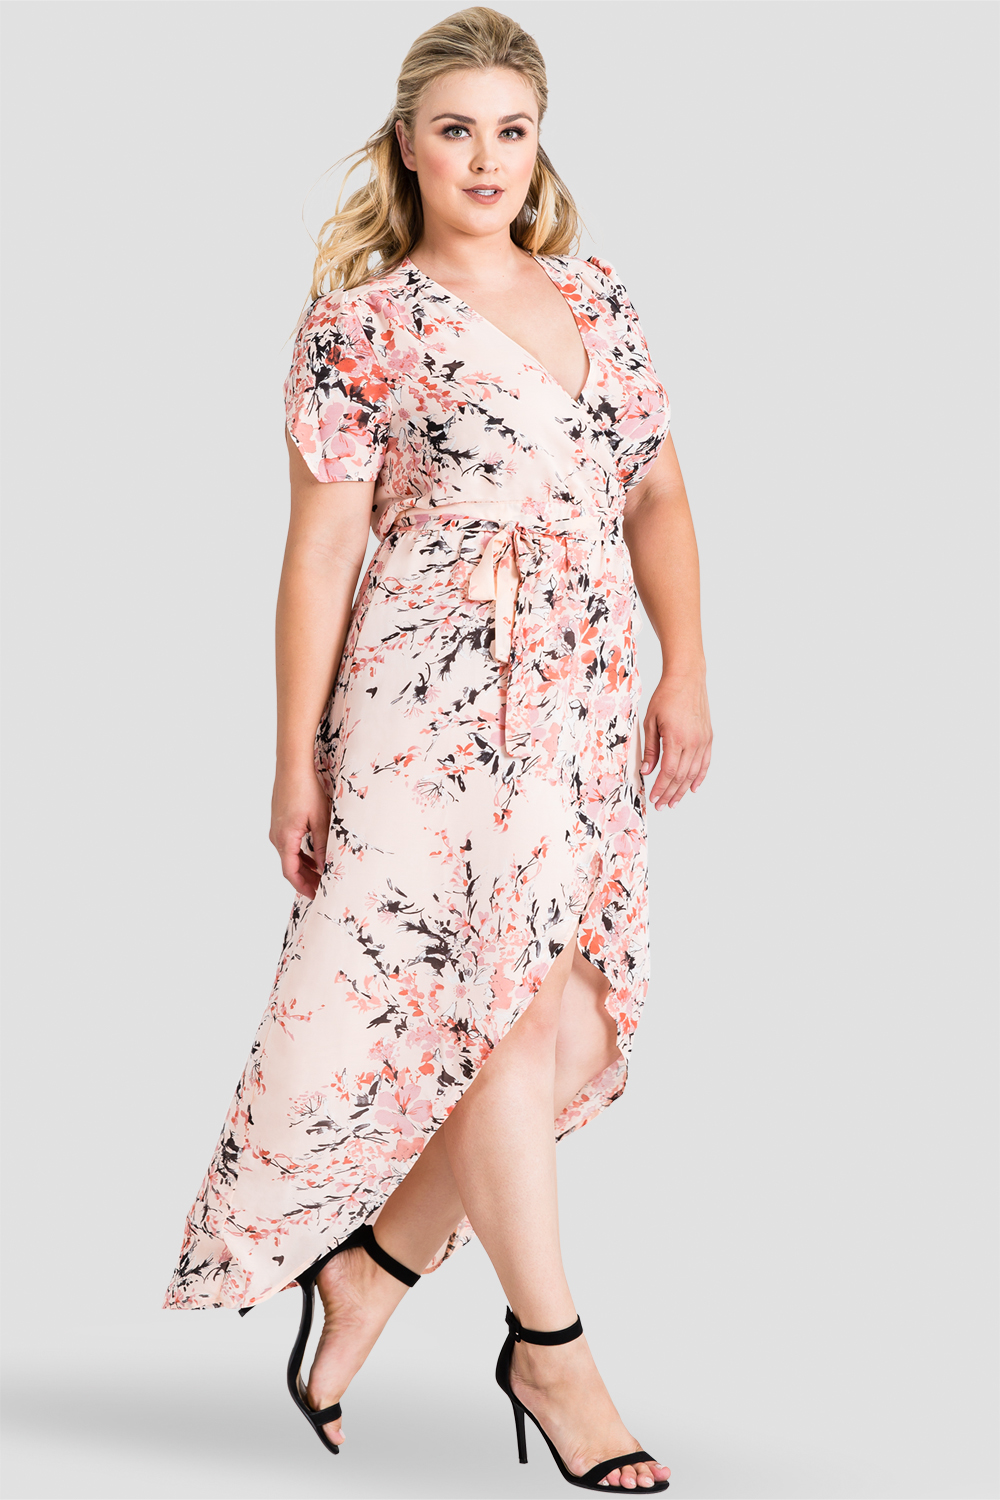 top-rated discount On Clearance recognized brands Plus Size Robin Short Sleeve V-Neck Peach Pink Floral Print Maxi Dress